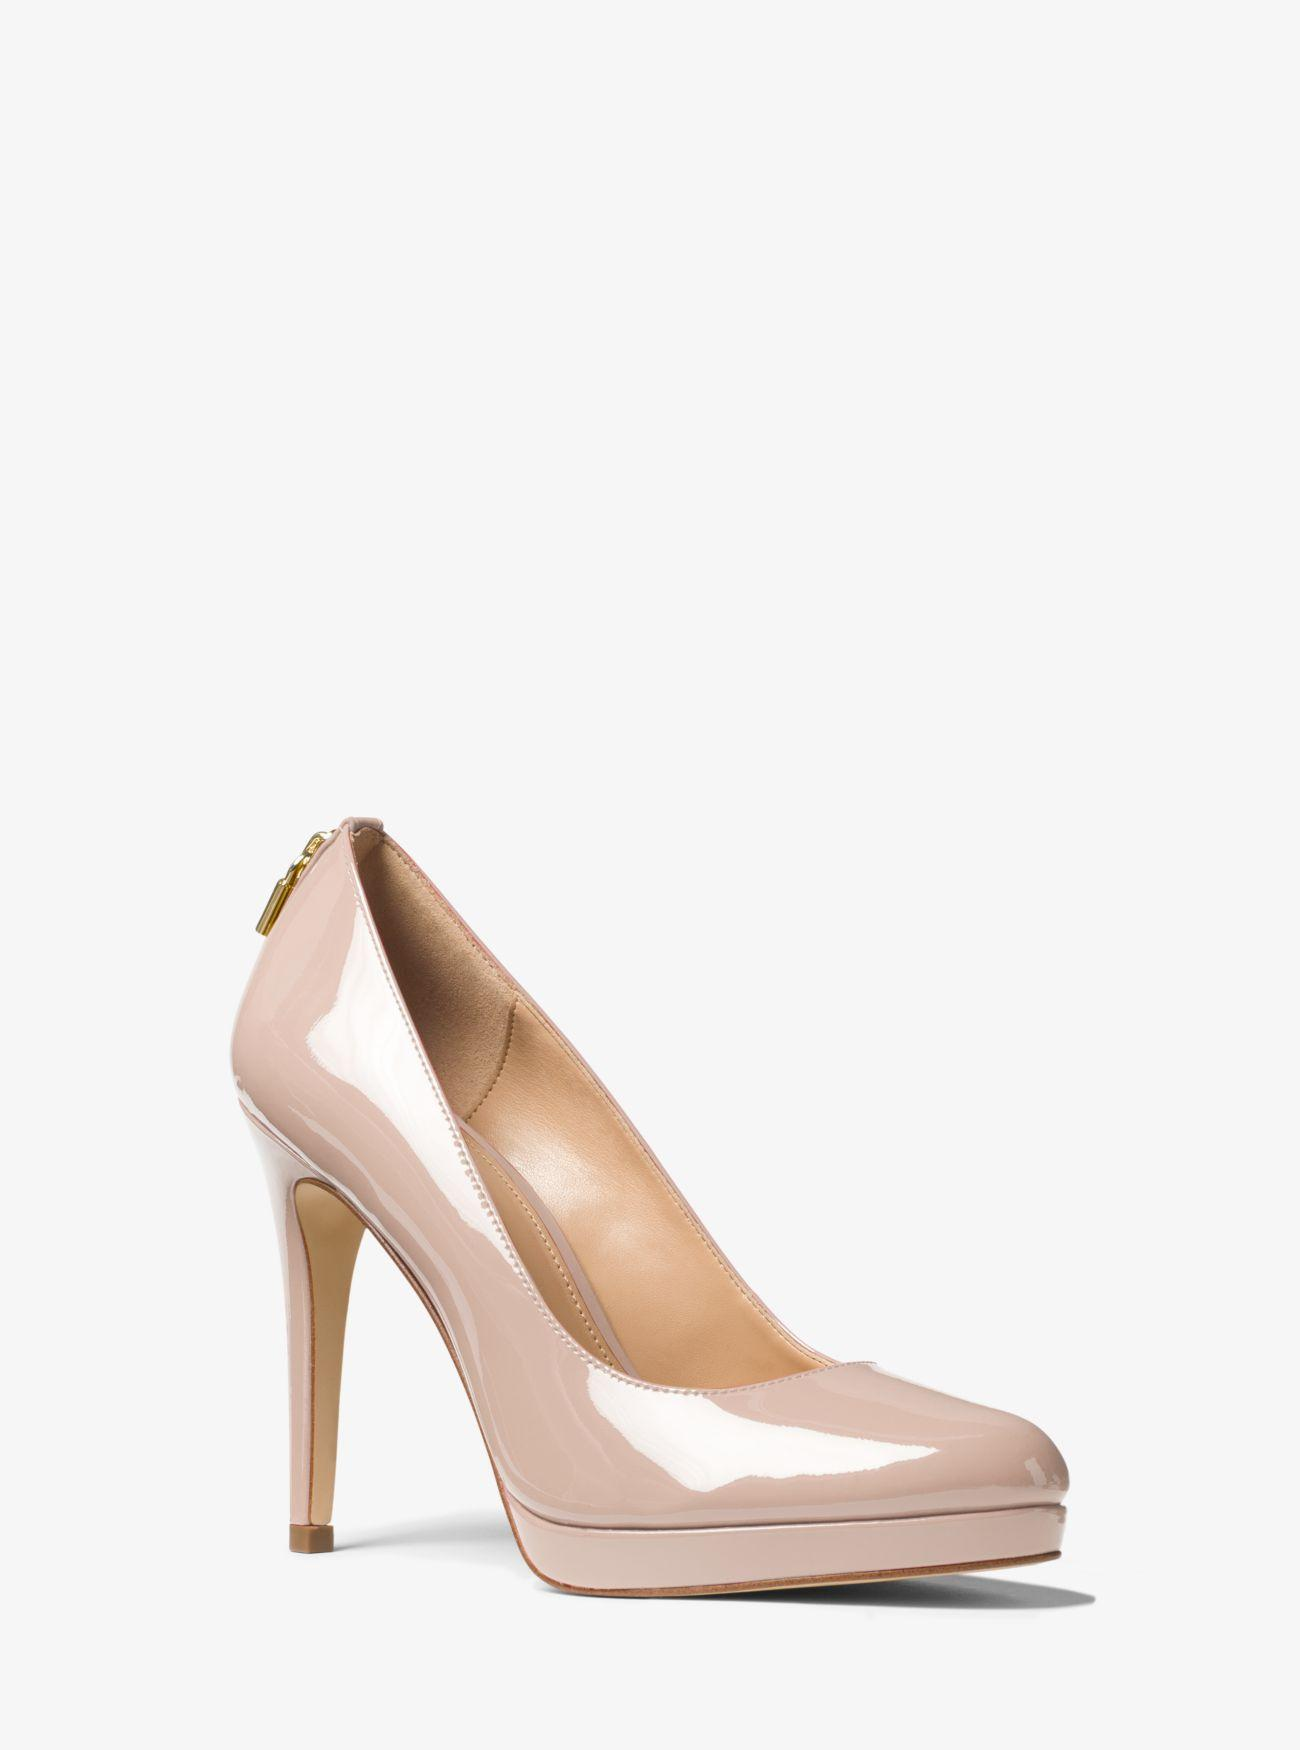 7f8dc60f560 Lyst - Michael Kors Antoinette Patent Leather Pump in Pink